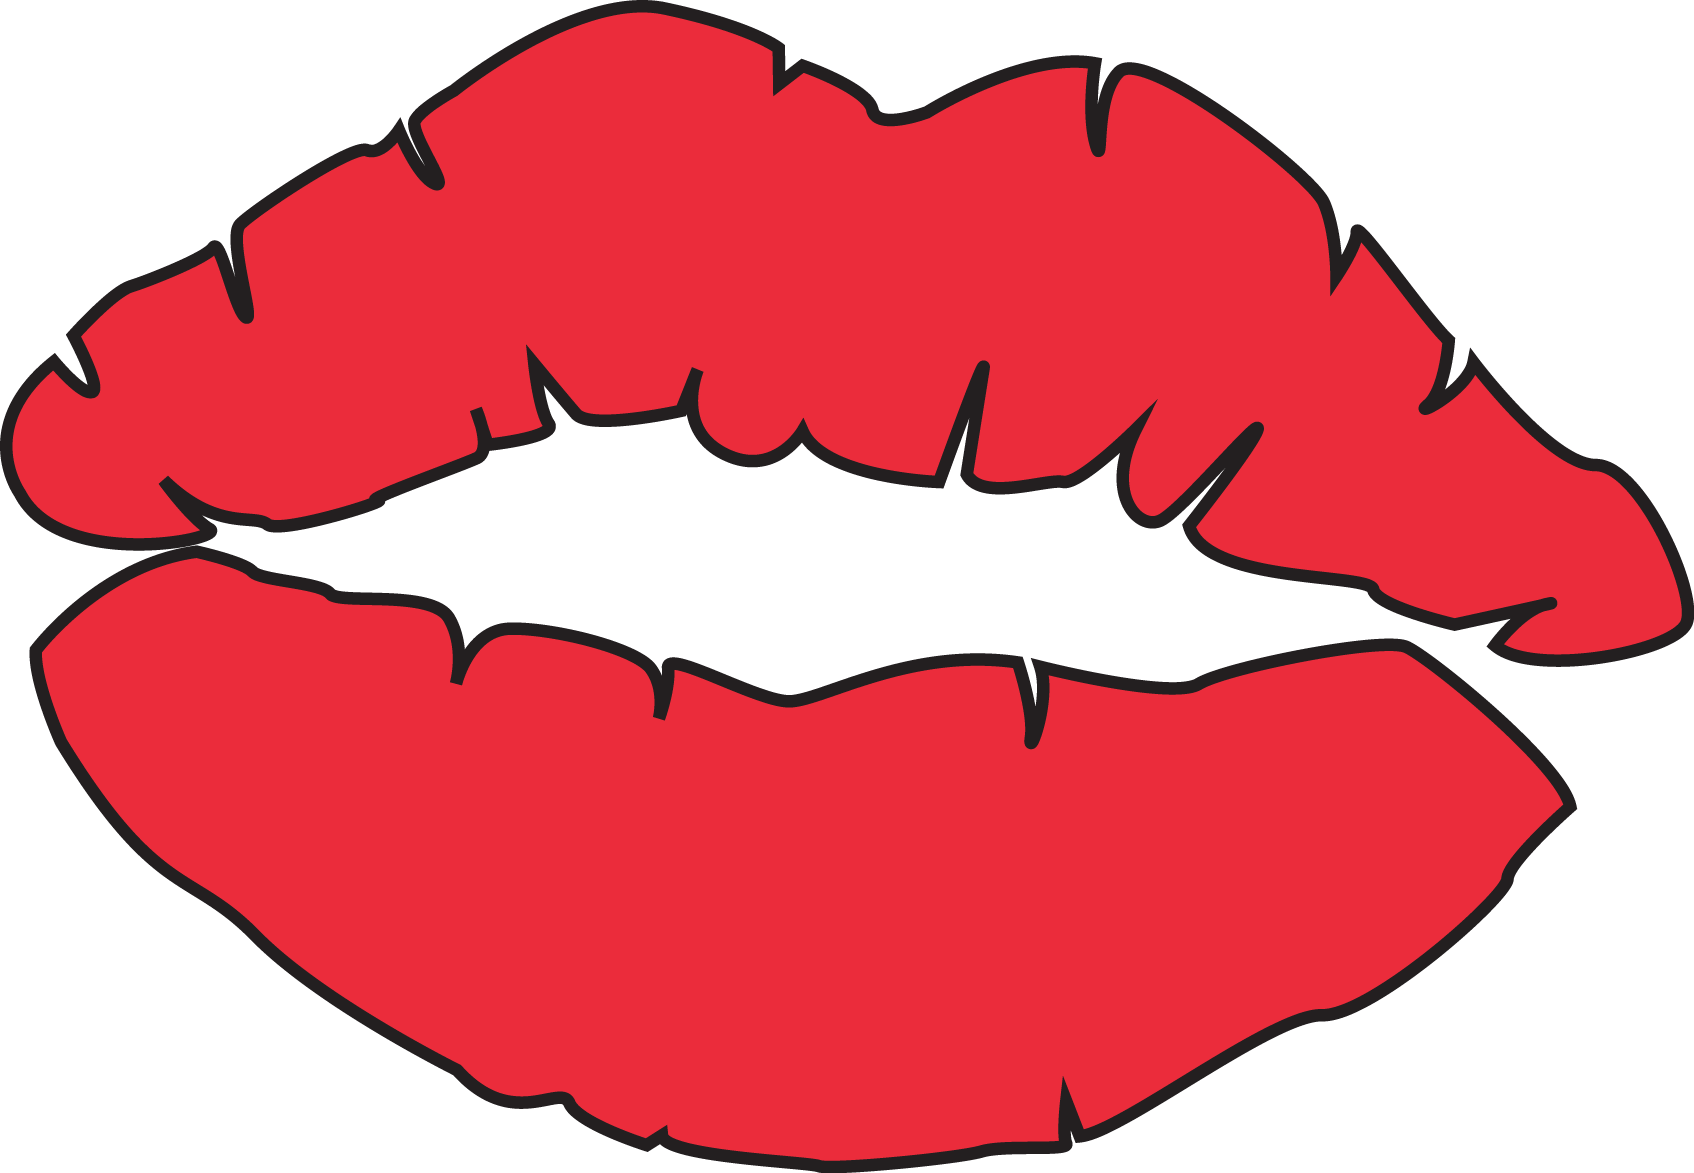 Lip clipart. Free kissing lips download